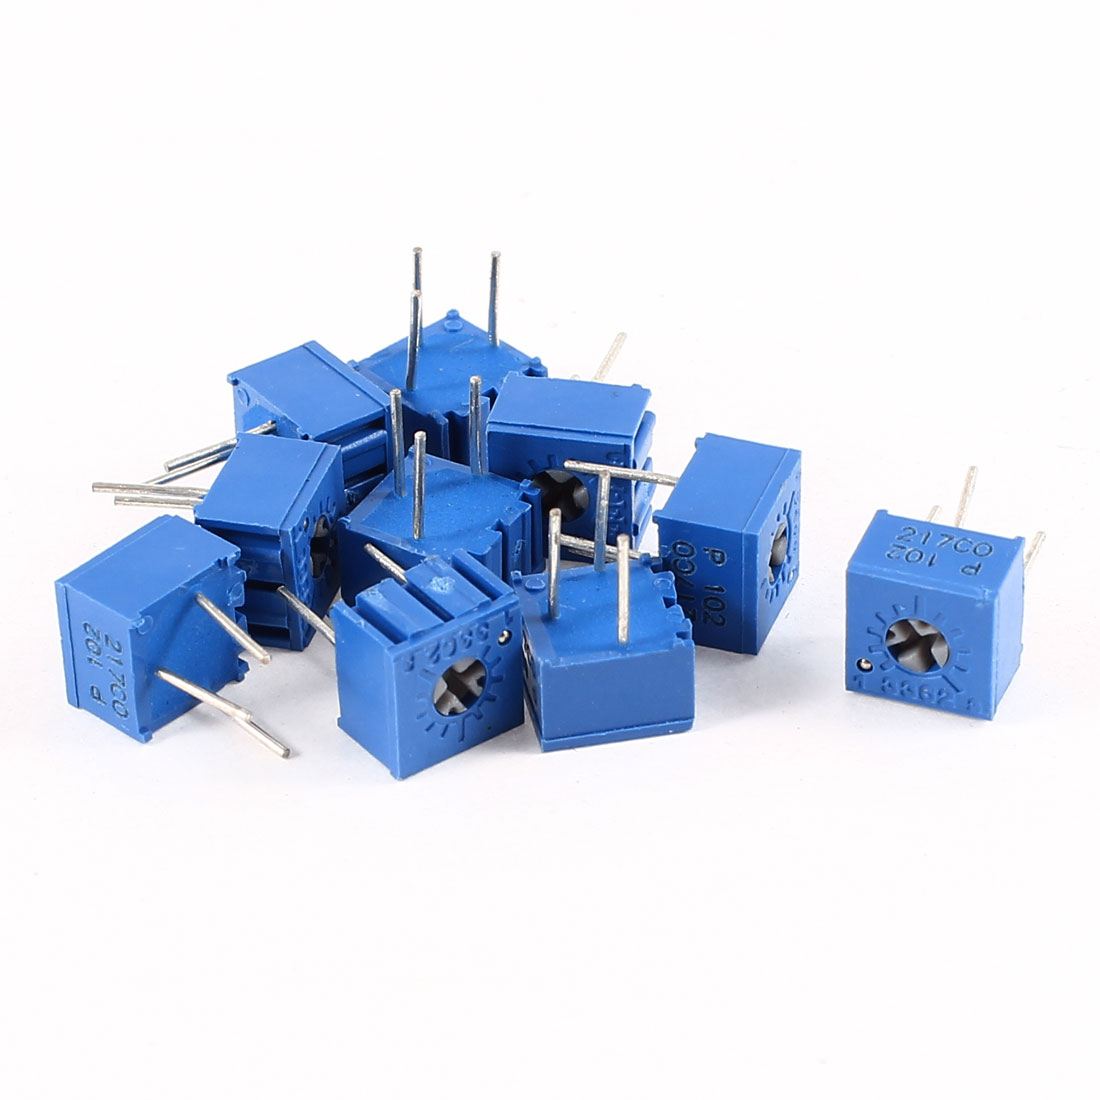 10Pcs 3362W-102 1K ohm 3 Pins High Precision Adjustable Resistor Trim Pot Potentiometer Trimmer